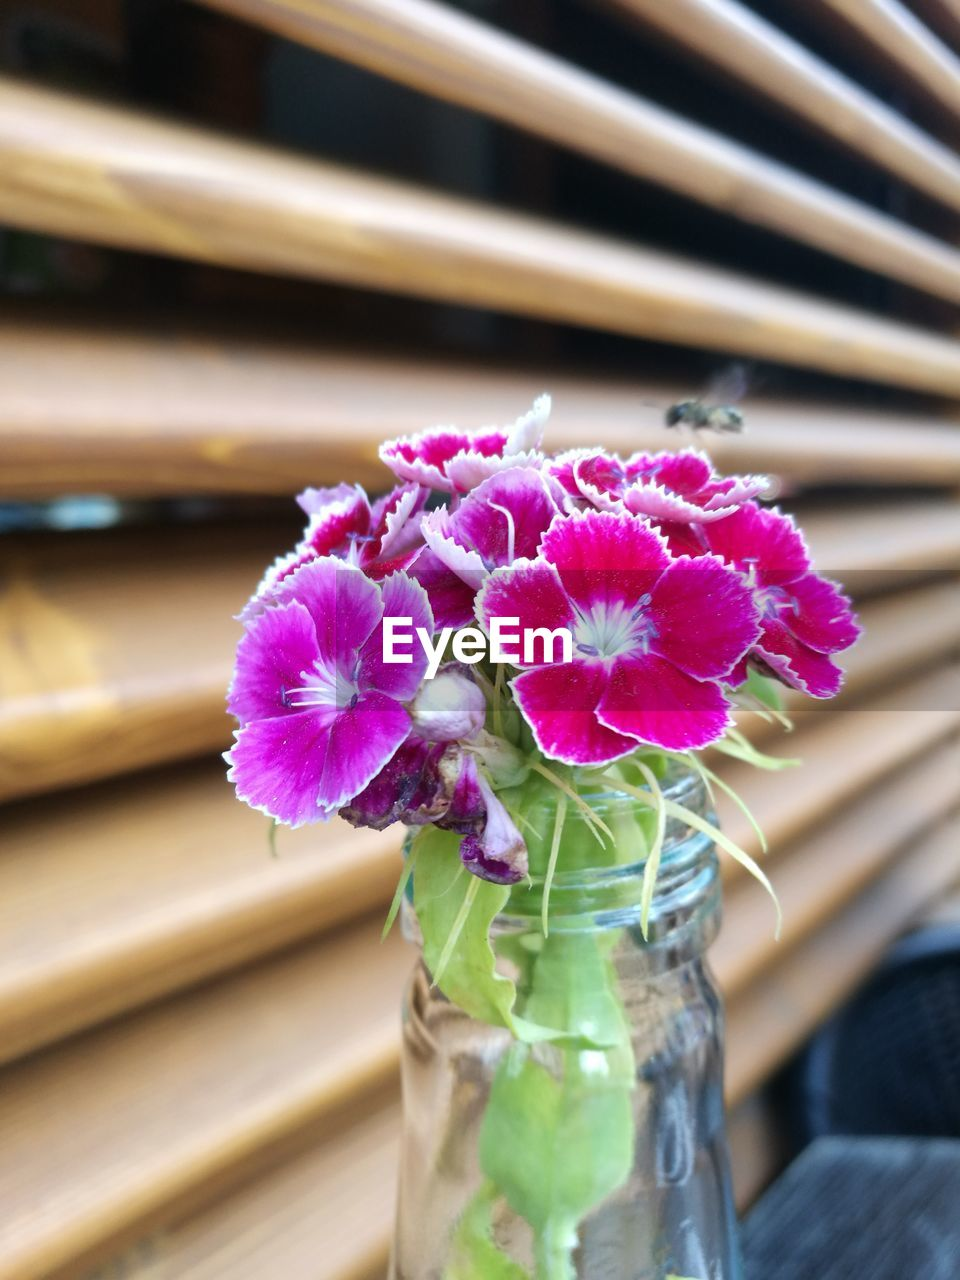 flower, flowering plant, freshness, vulnerability, fragility, beauty in nature, plant, close-up, petal, pink color, flower head, inflorescence, nature, vase, focus on foreground, no people, indoors, purple, wood - material, table, softness, flower arrangement